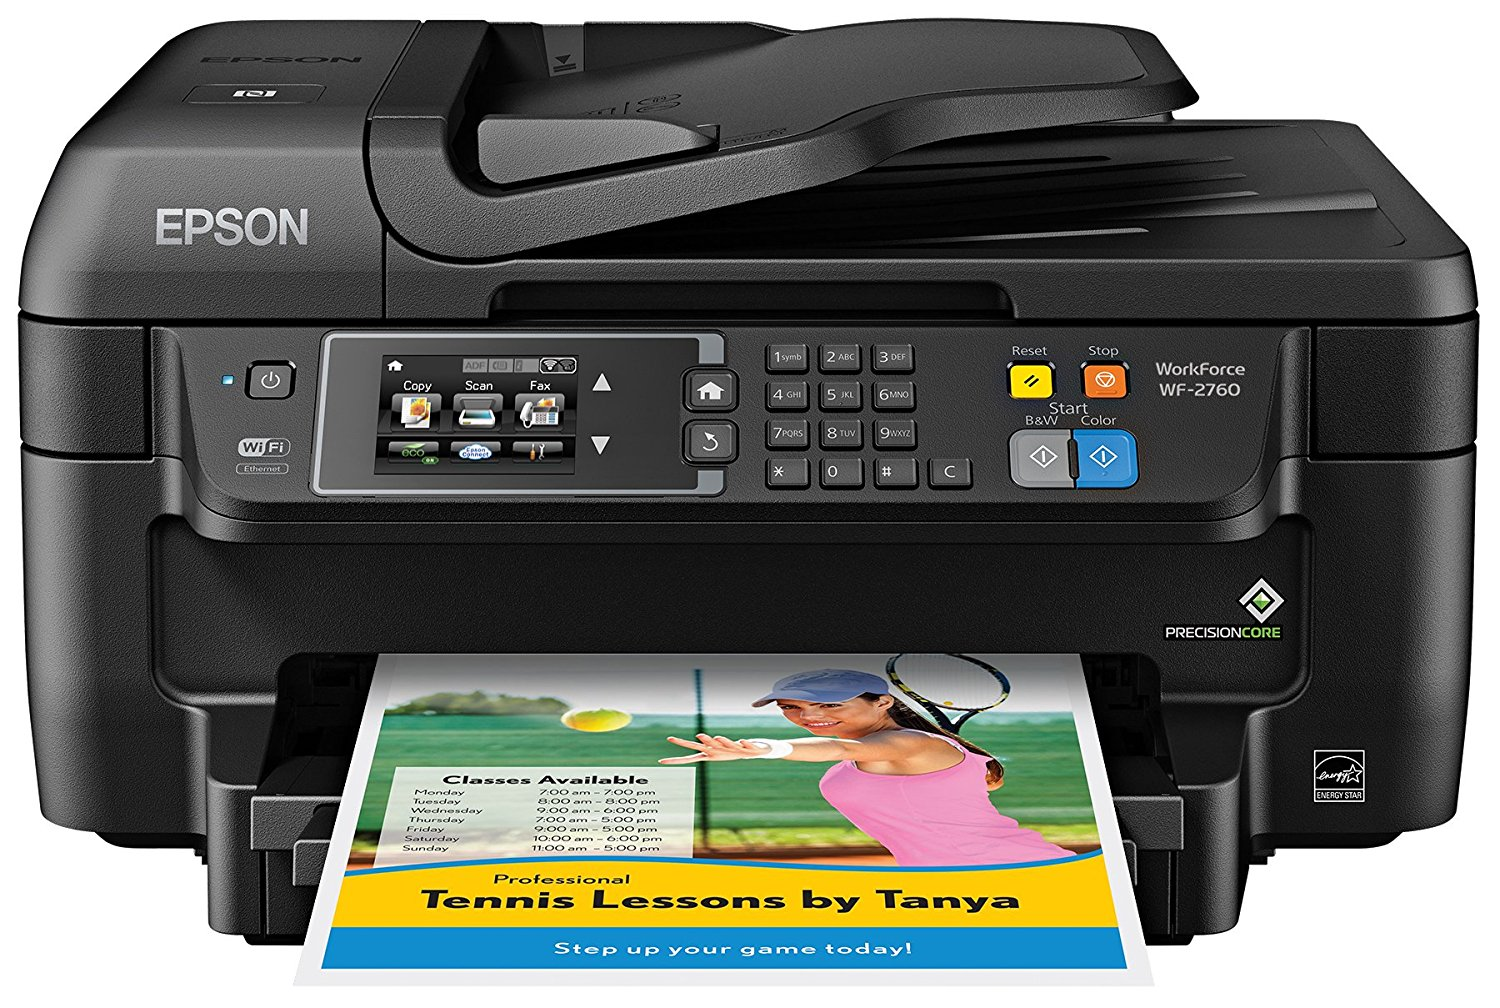 epson front view